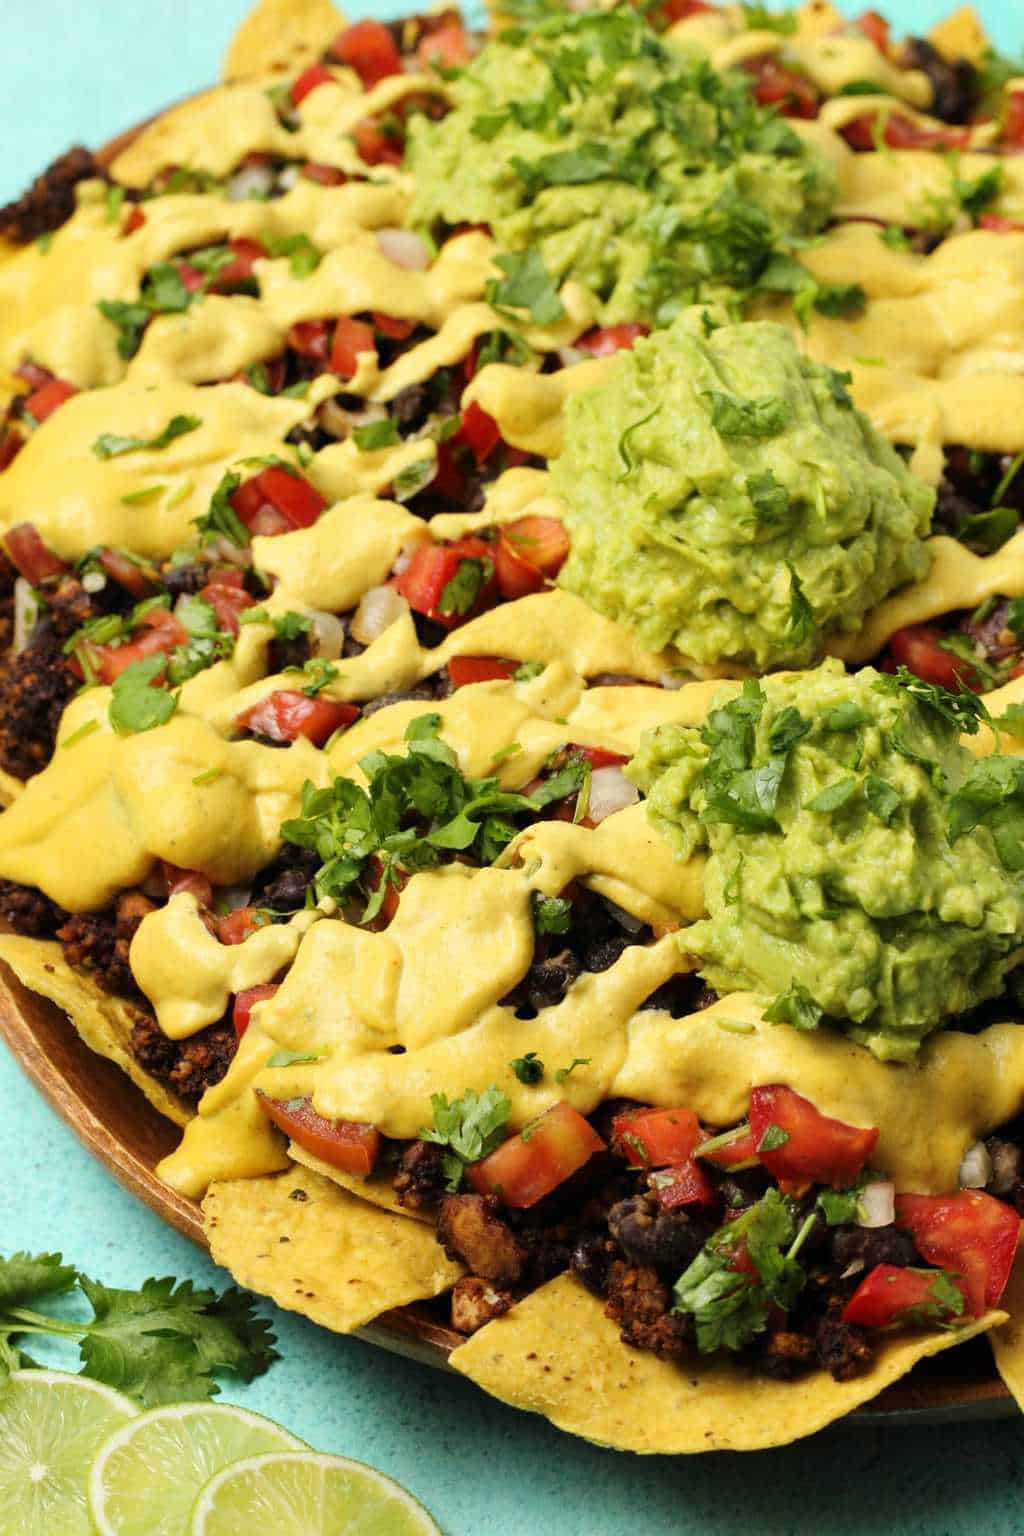 Fully loaded vegan nachos on a wooden platter.